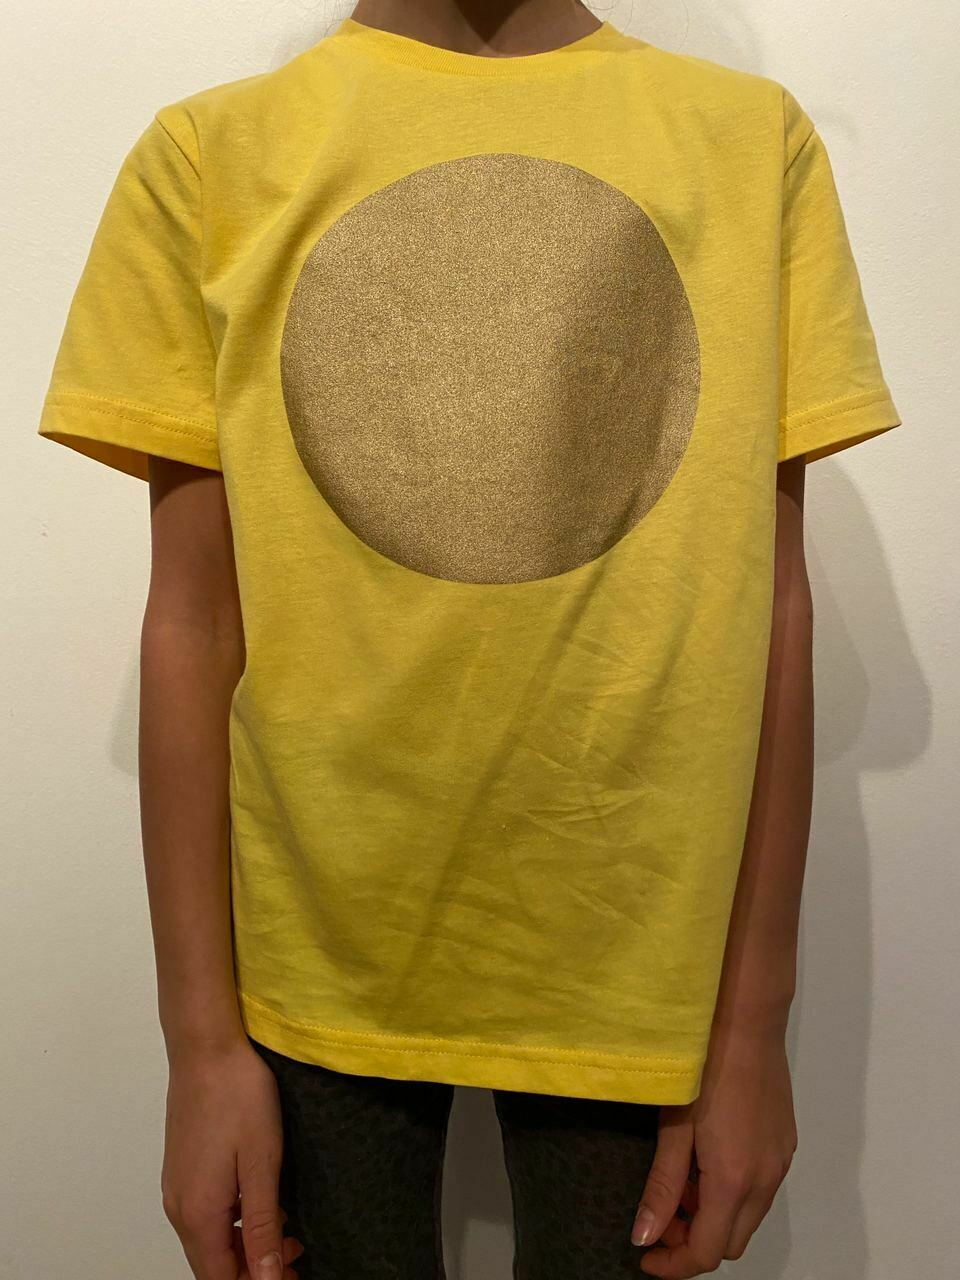 BE GOLDEN by The Lovers, Kinder T-shirt gelb / Druck gold